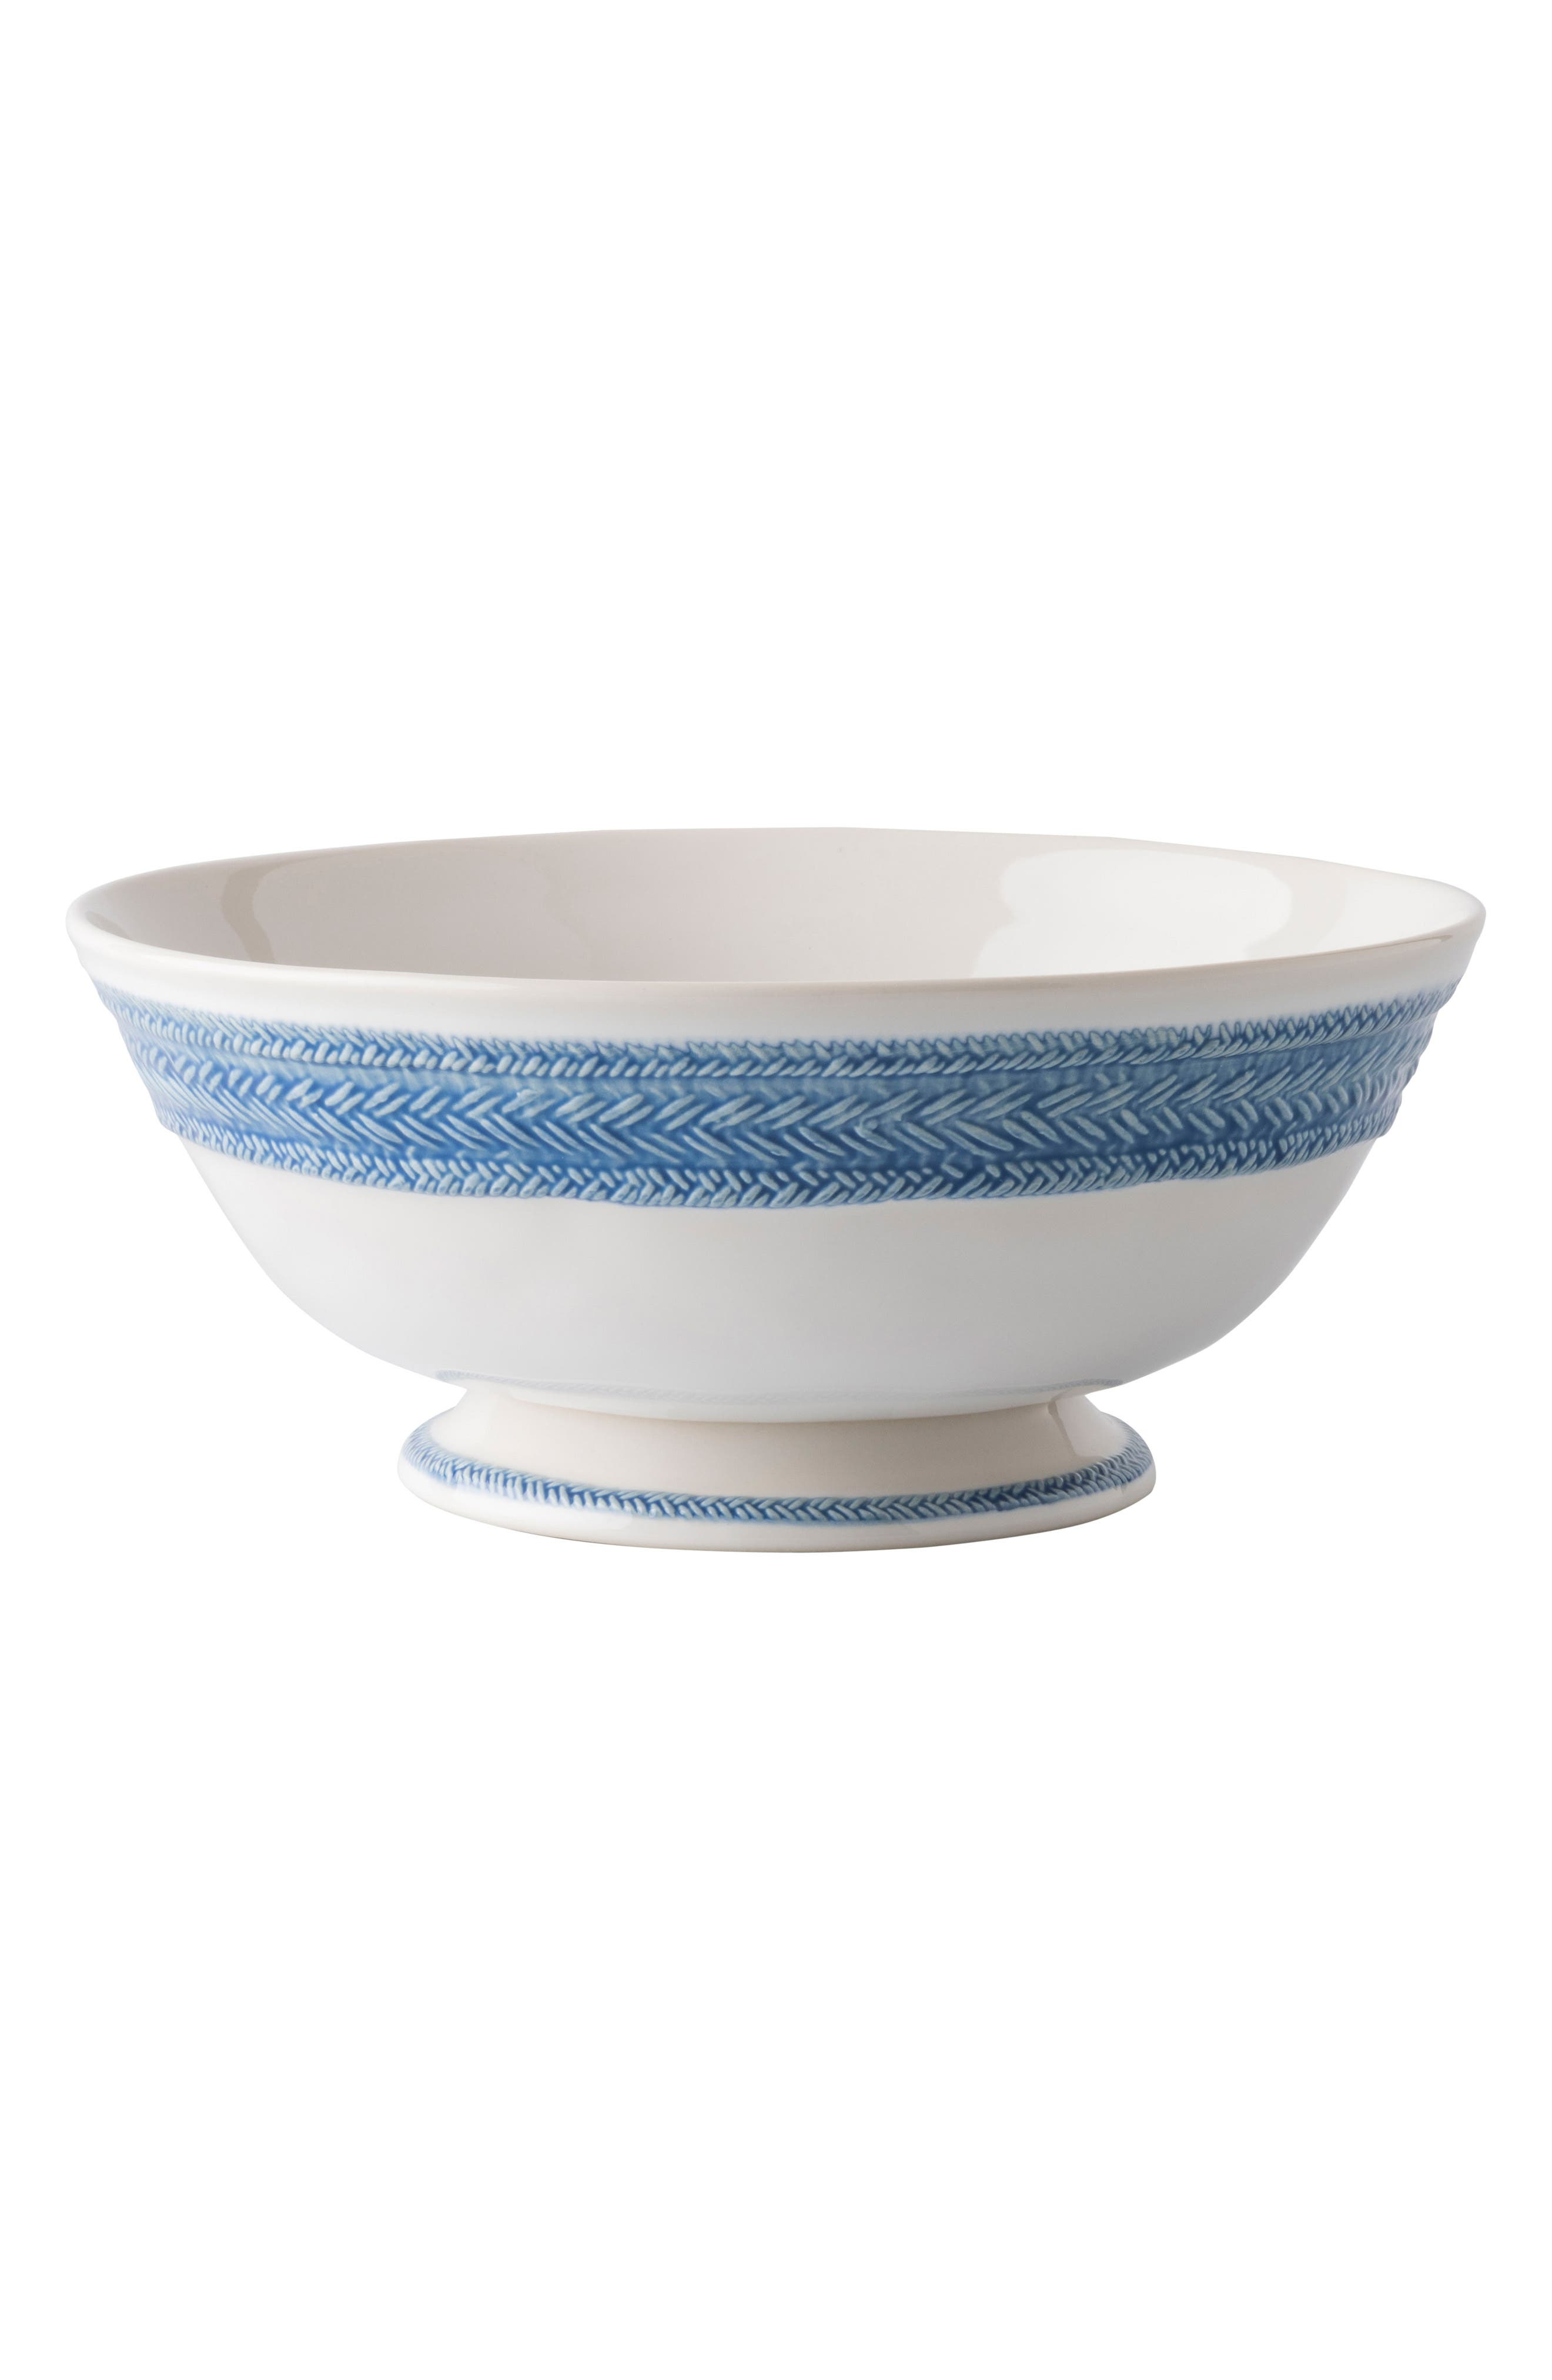 Le Panier Footed Fruit Bowl,                             Main thumbnail 1, color,                             WHITEWASH/ DELFT BLUE